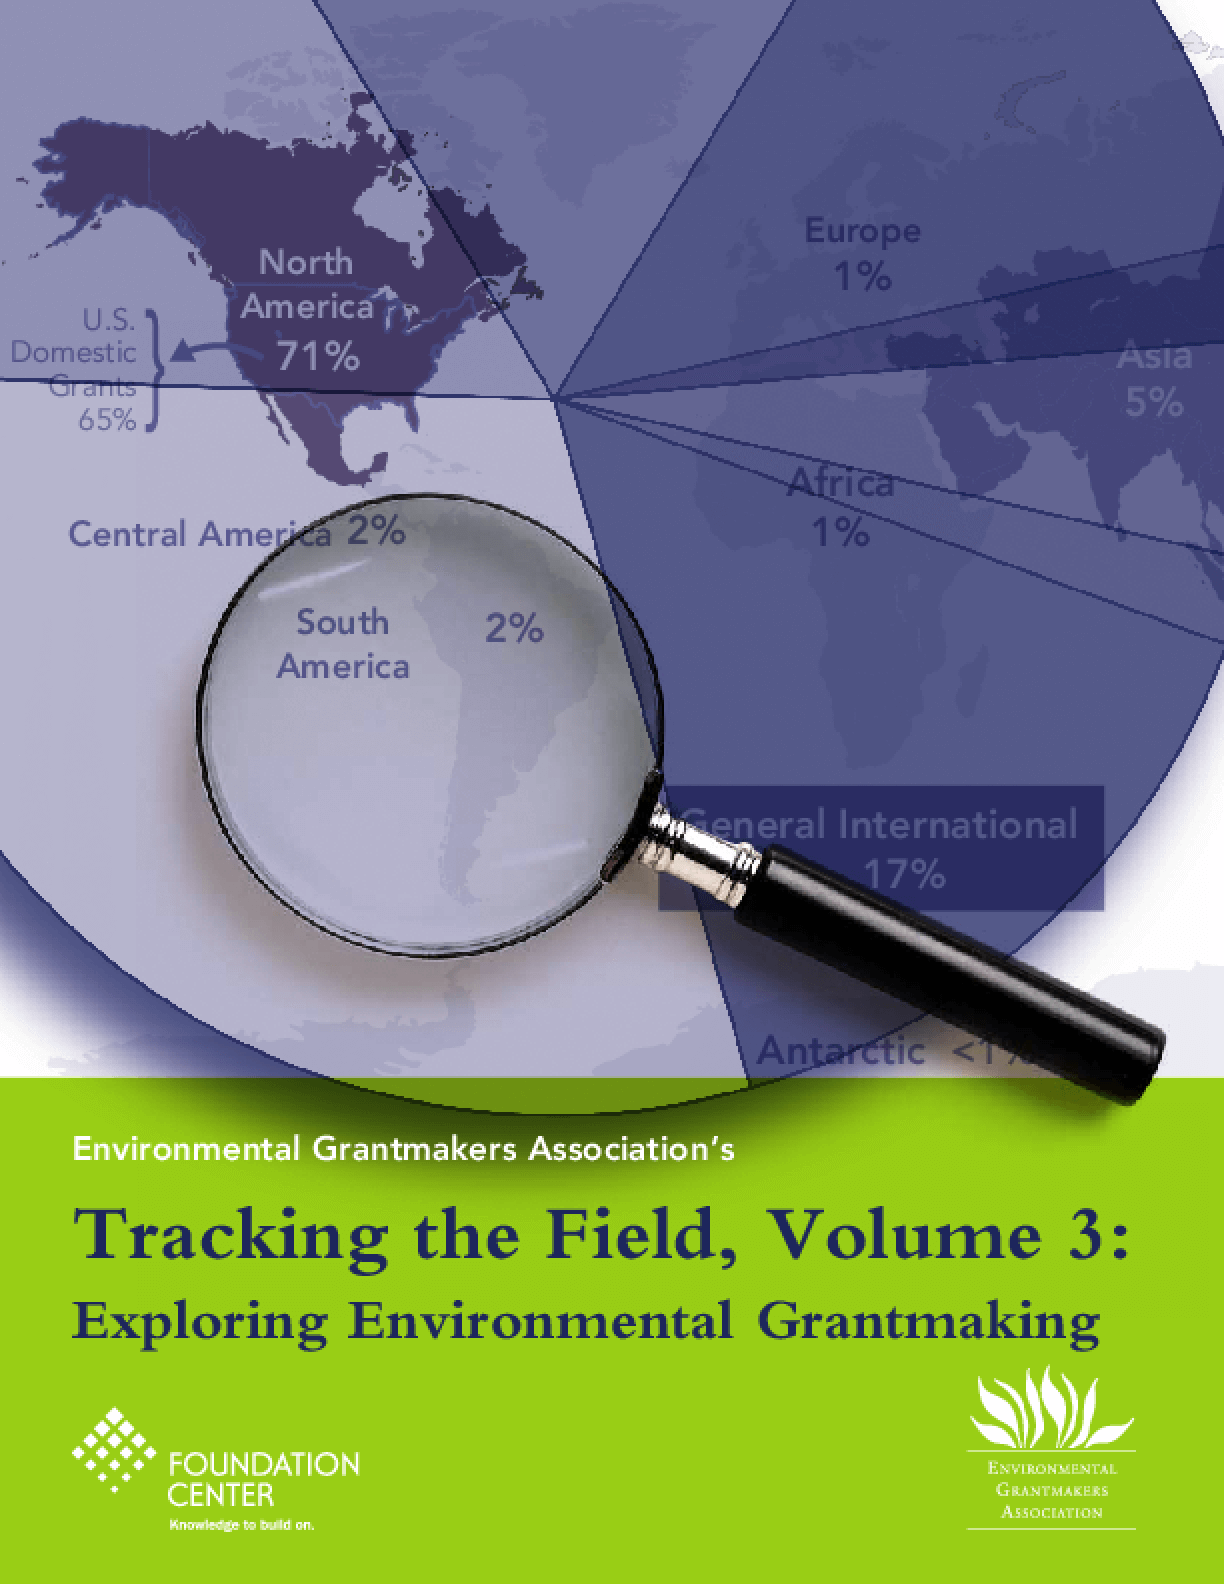 Tracking the Field, Volume 3: Exploring Environmental Grantmaking